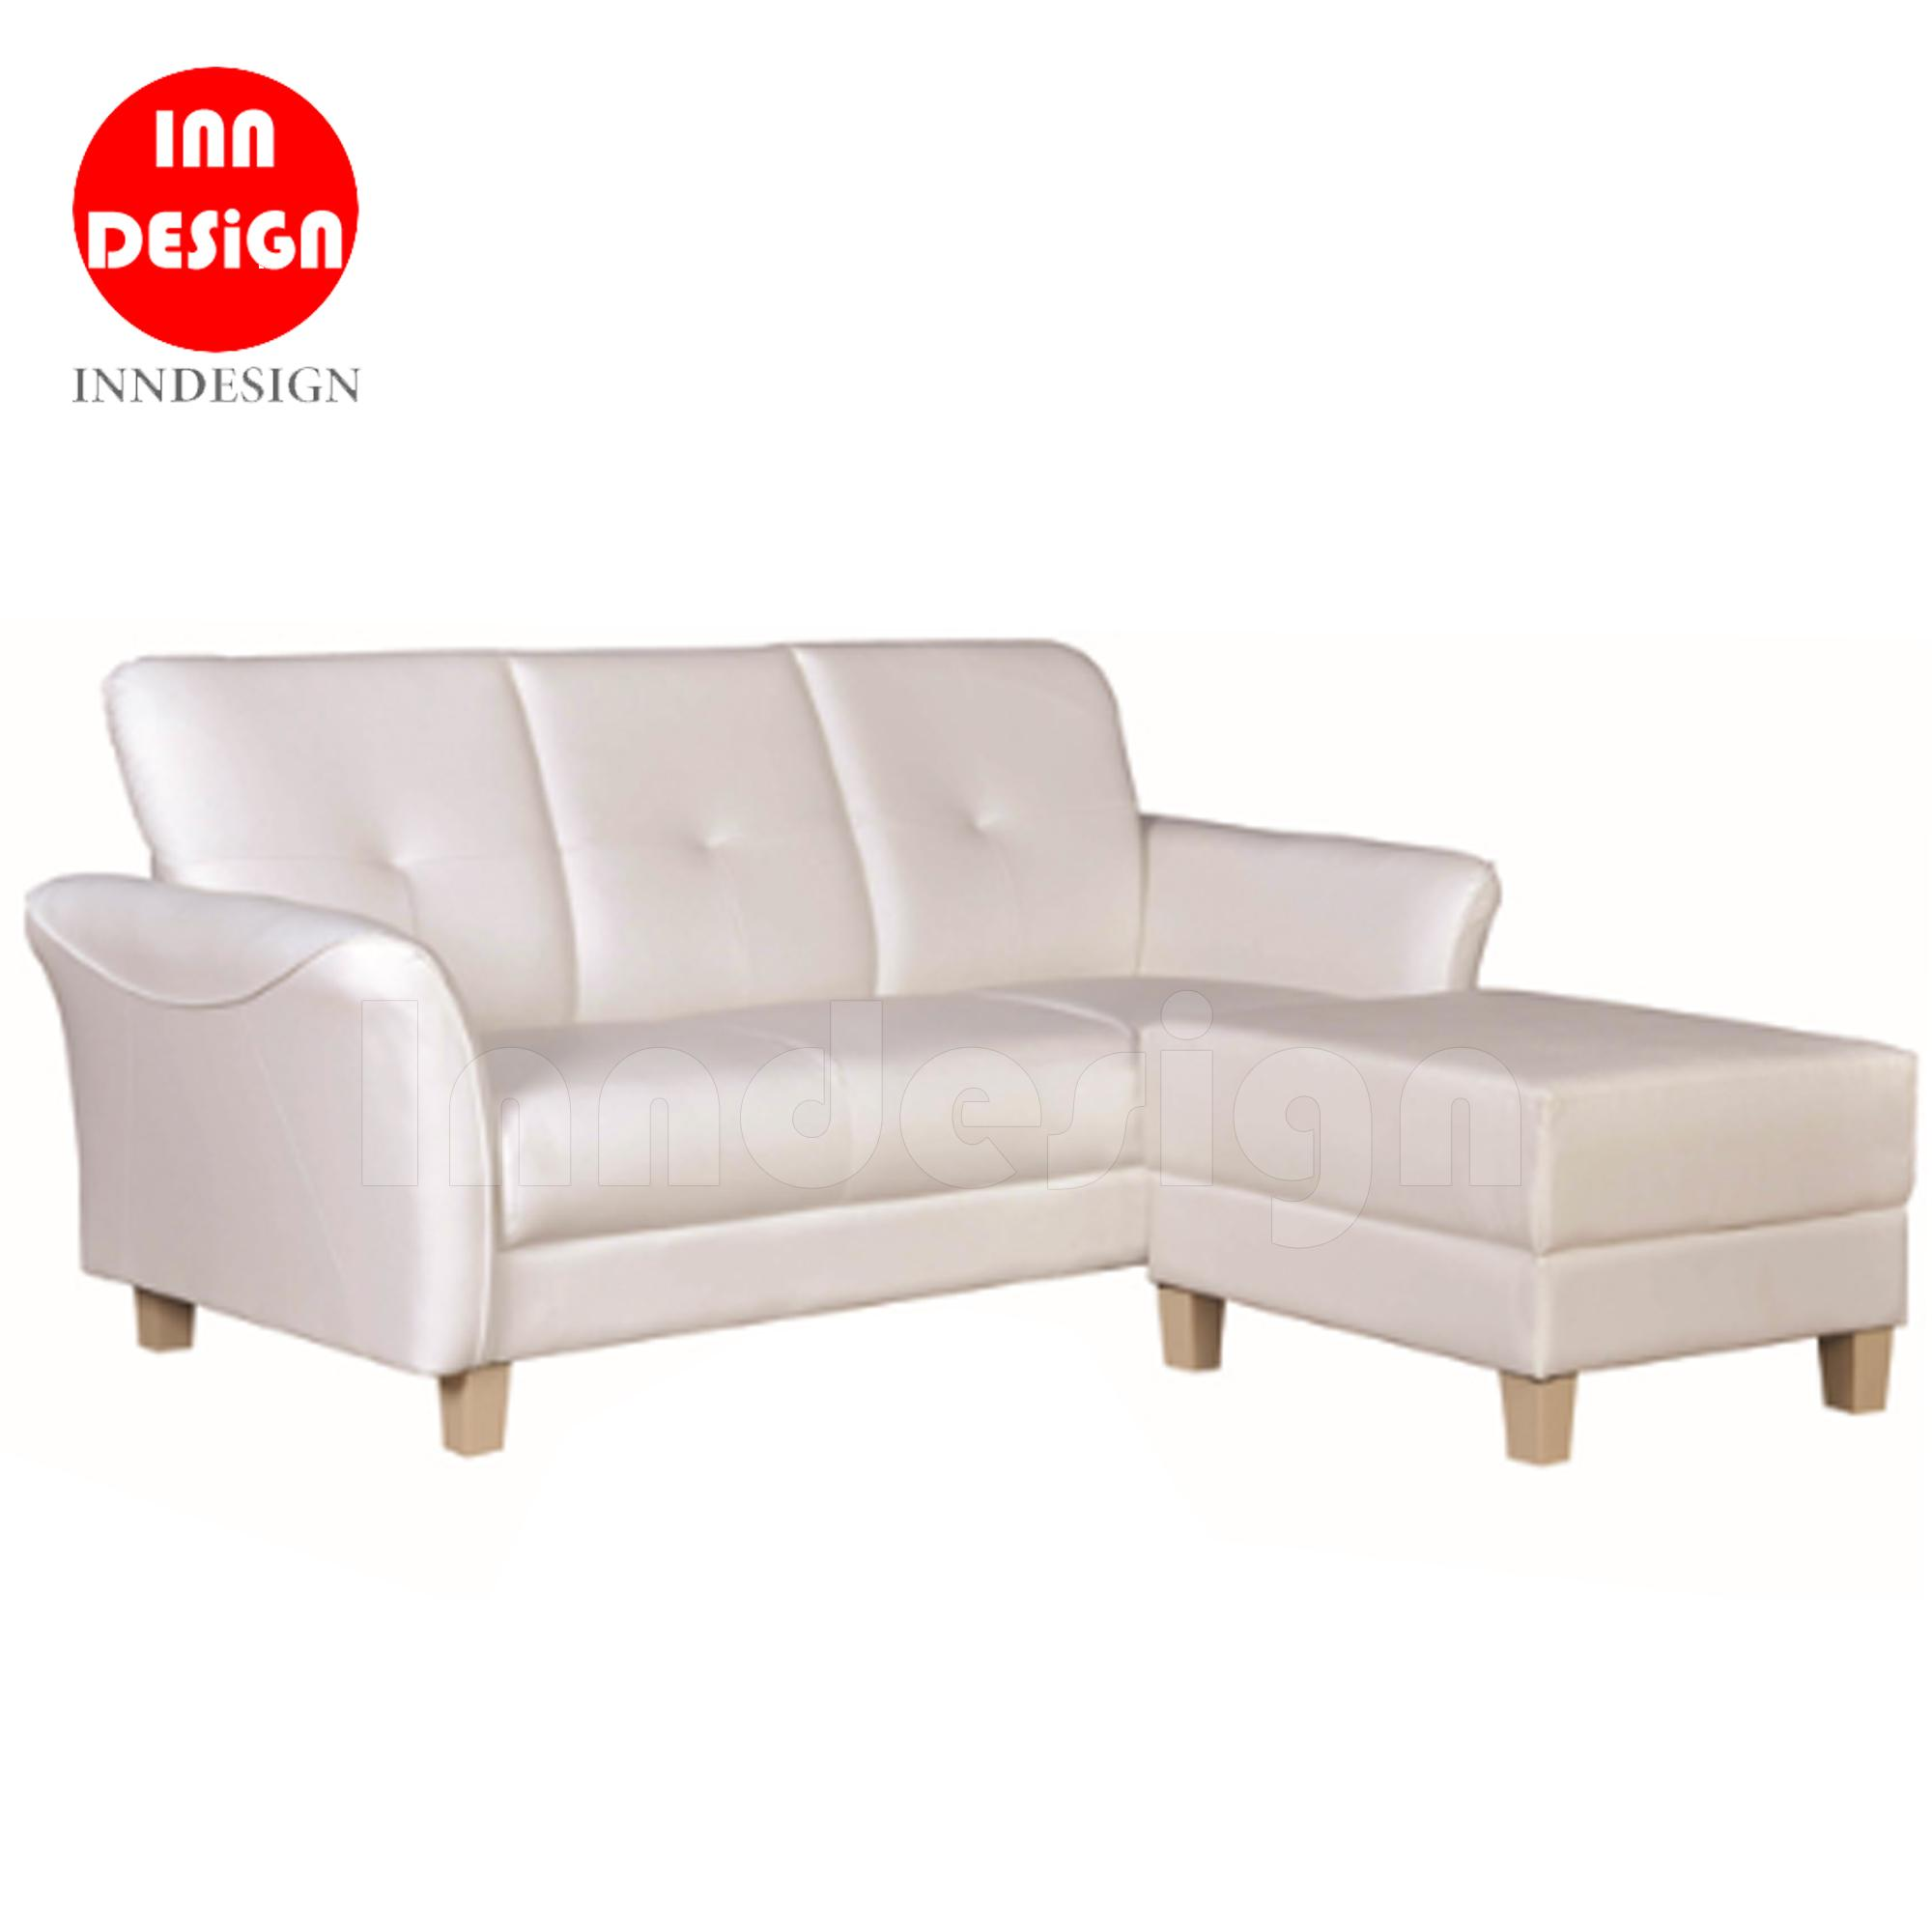 Henrick 3 Seater PVC Sofa with Stool